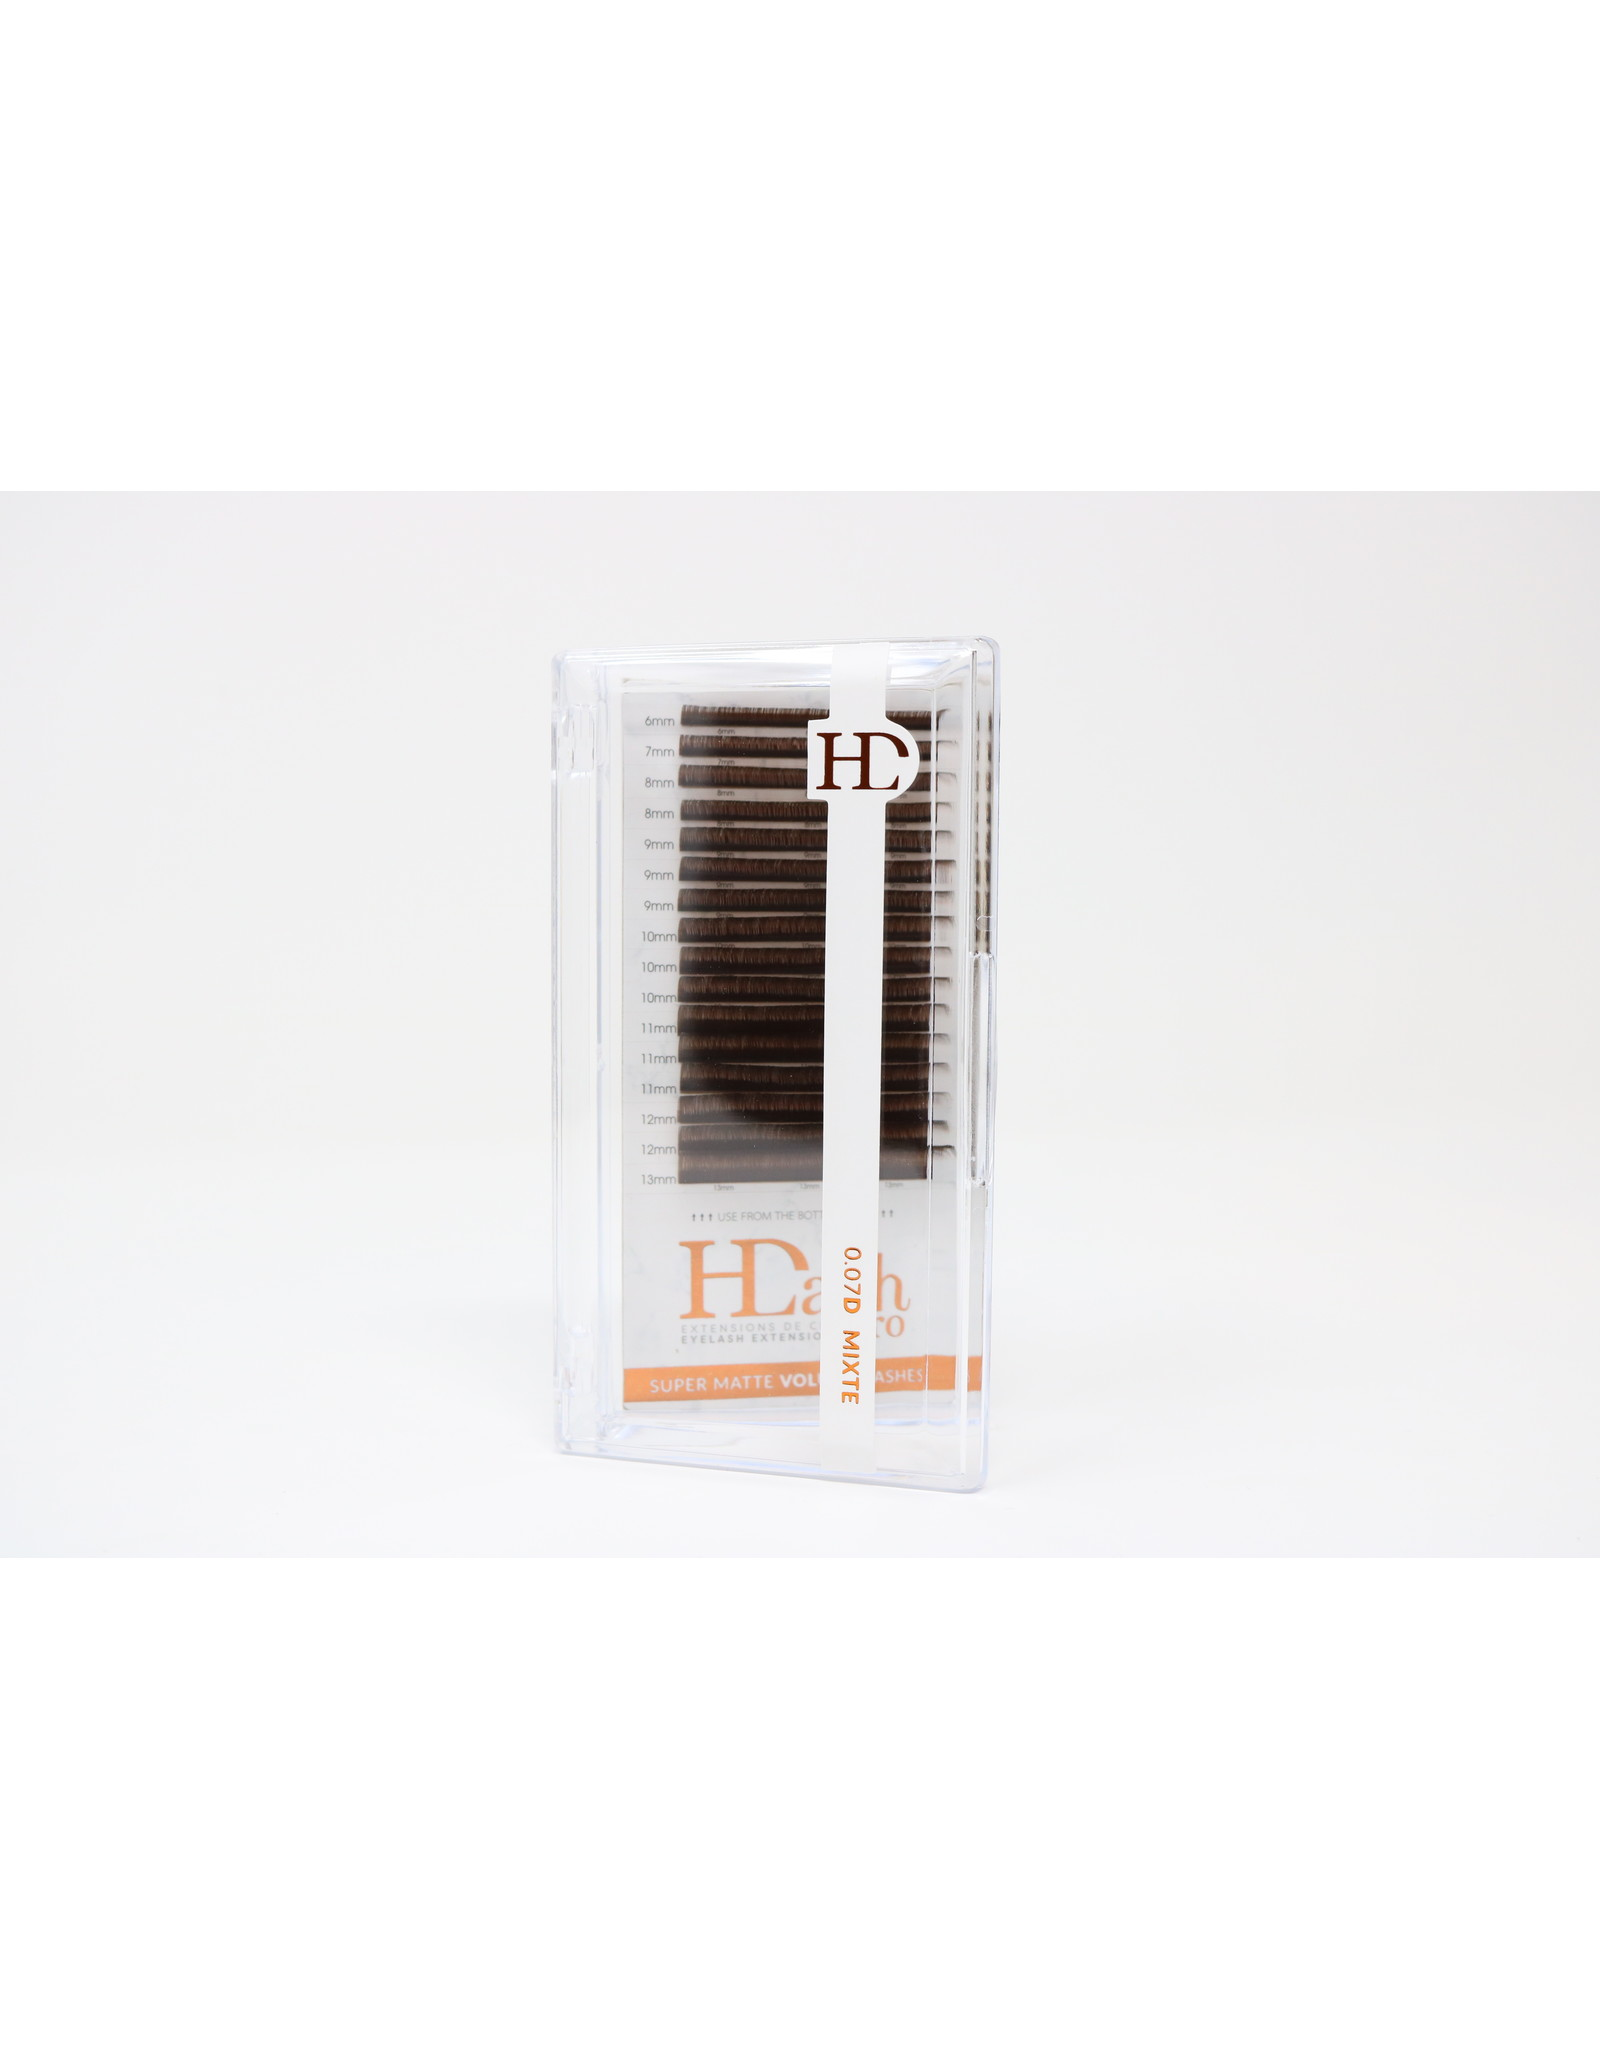 HDLASHPRO BROWN VOLUME LASHES